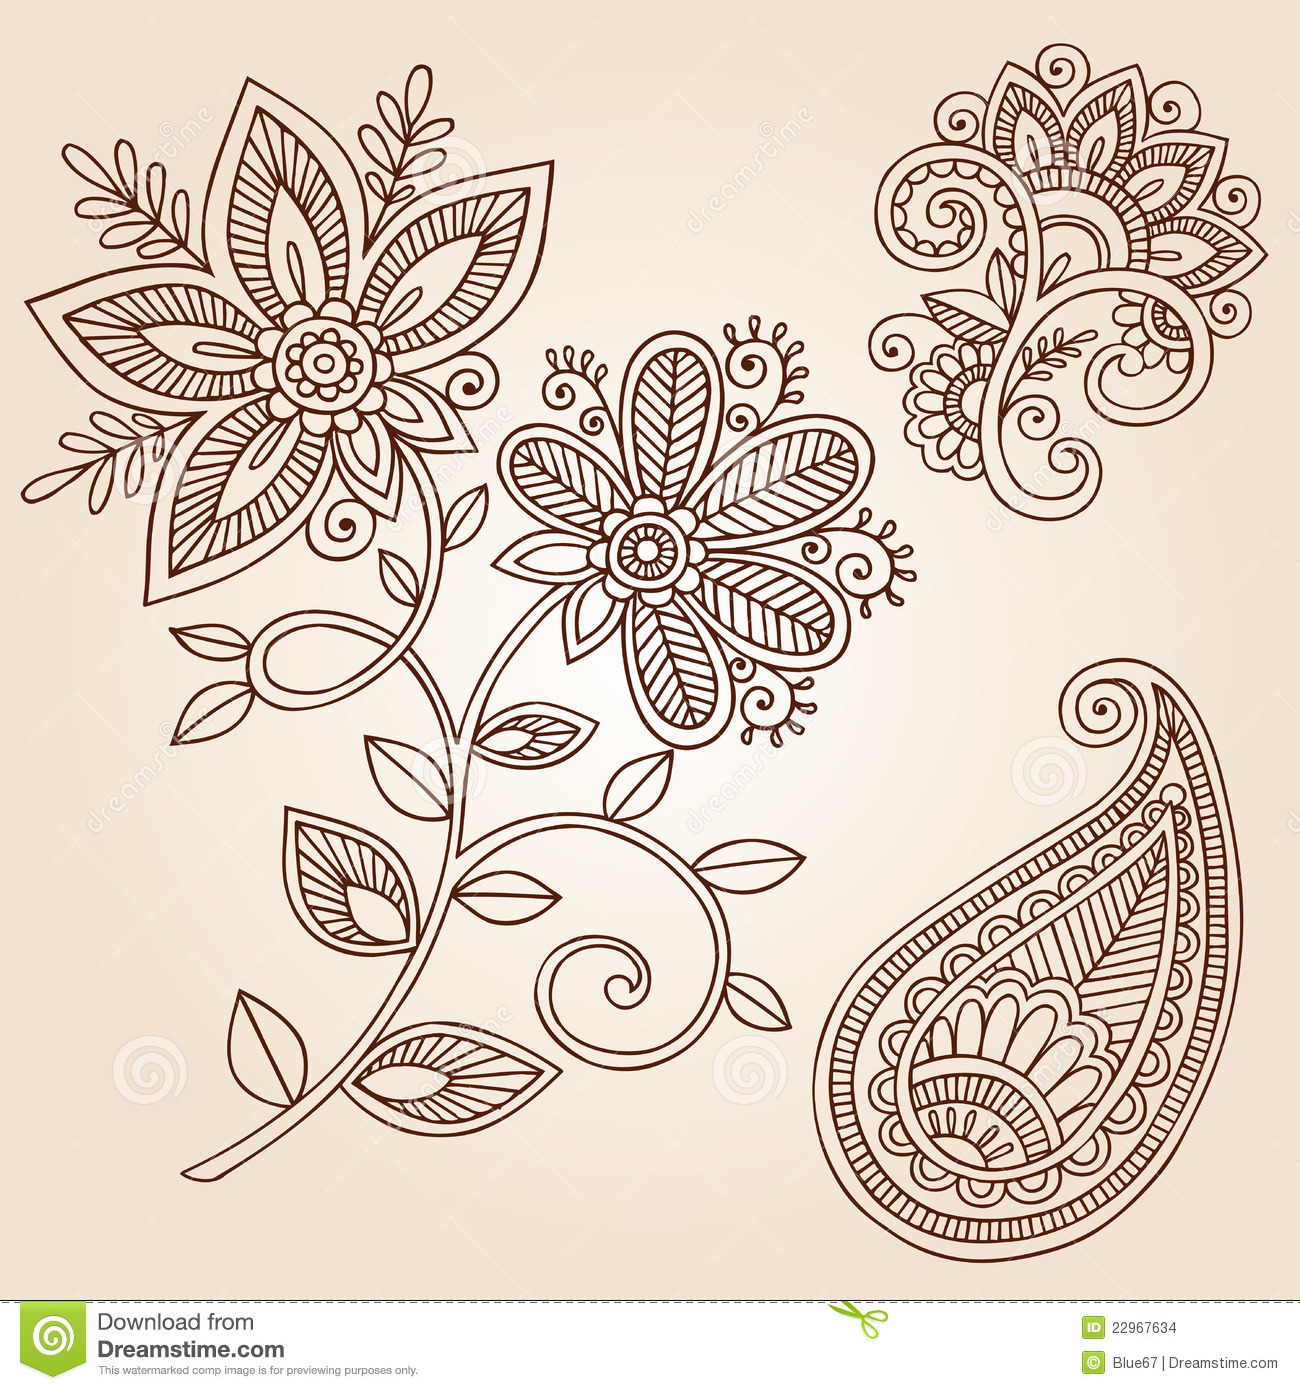 Henna Tattoo Flower Doodle Vector Design Elements